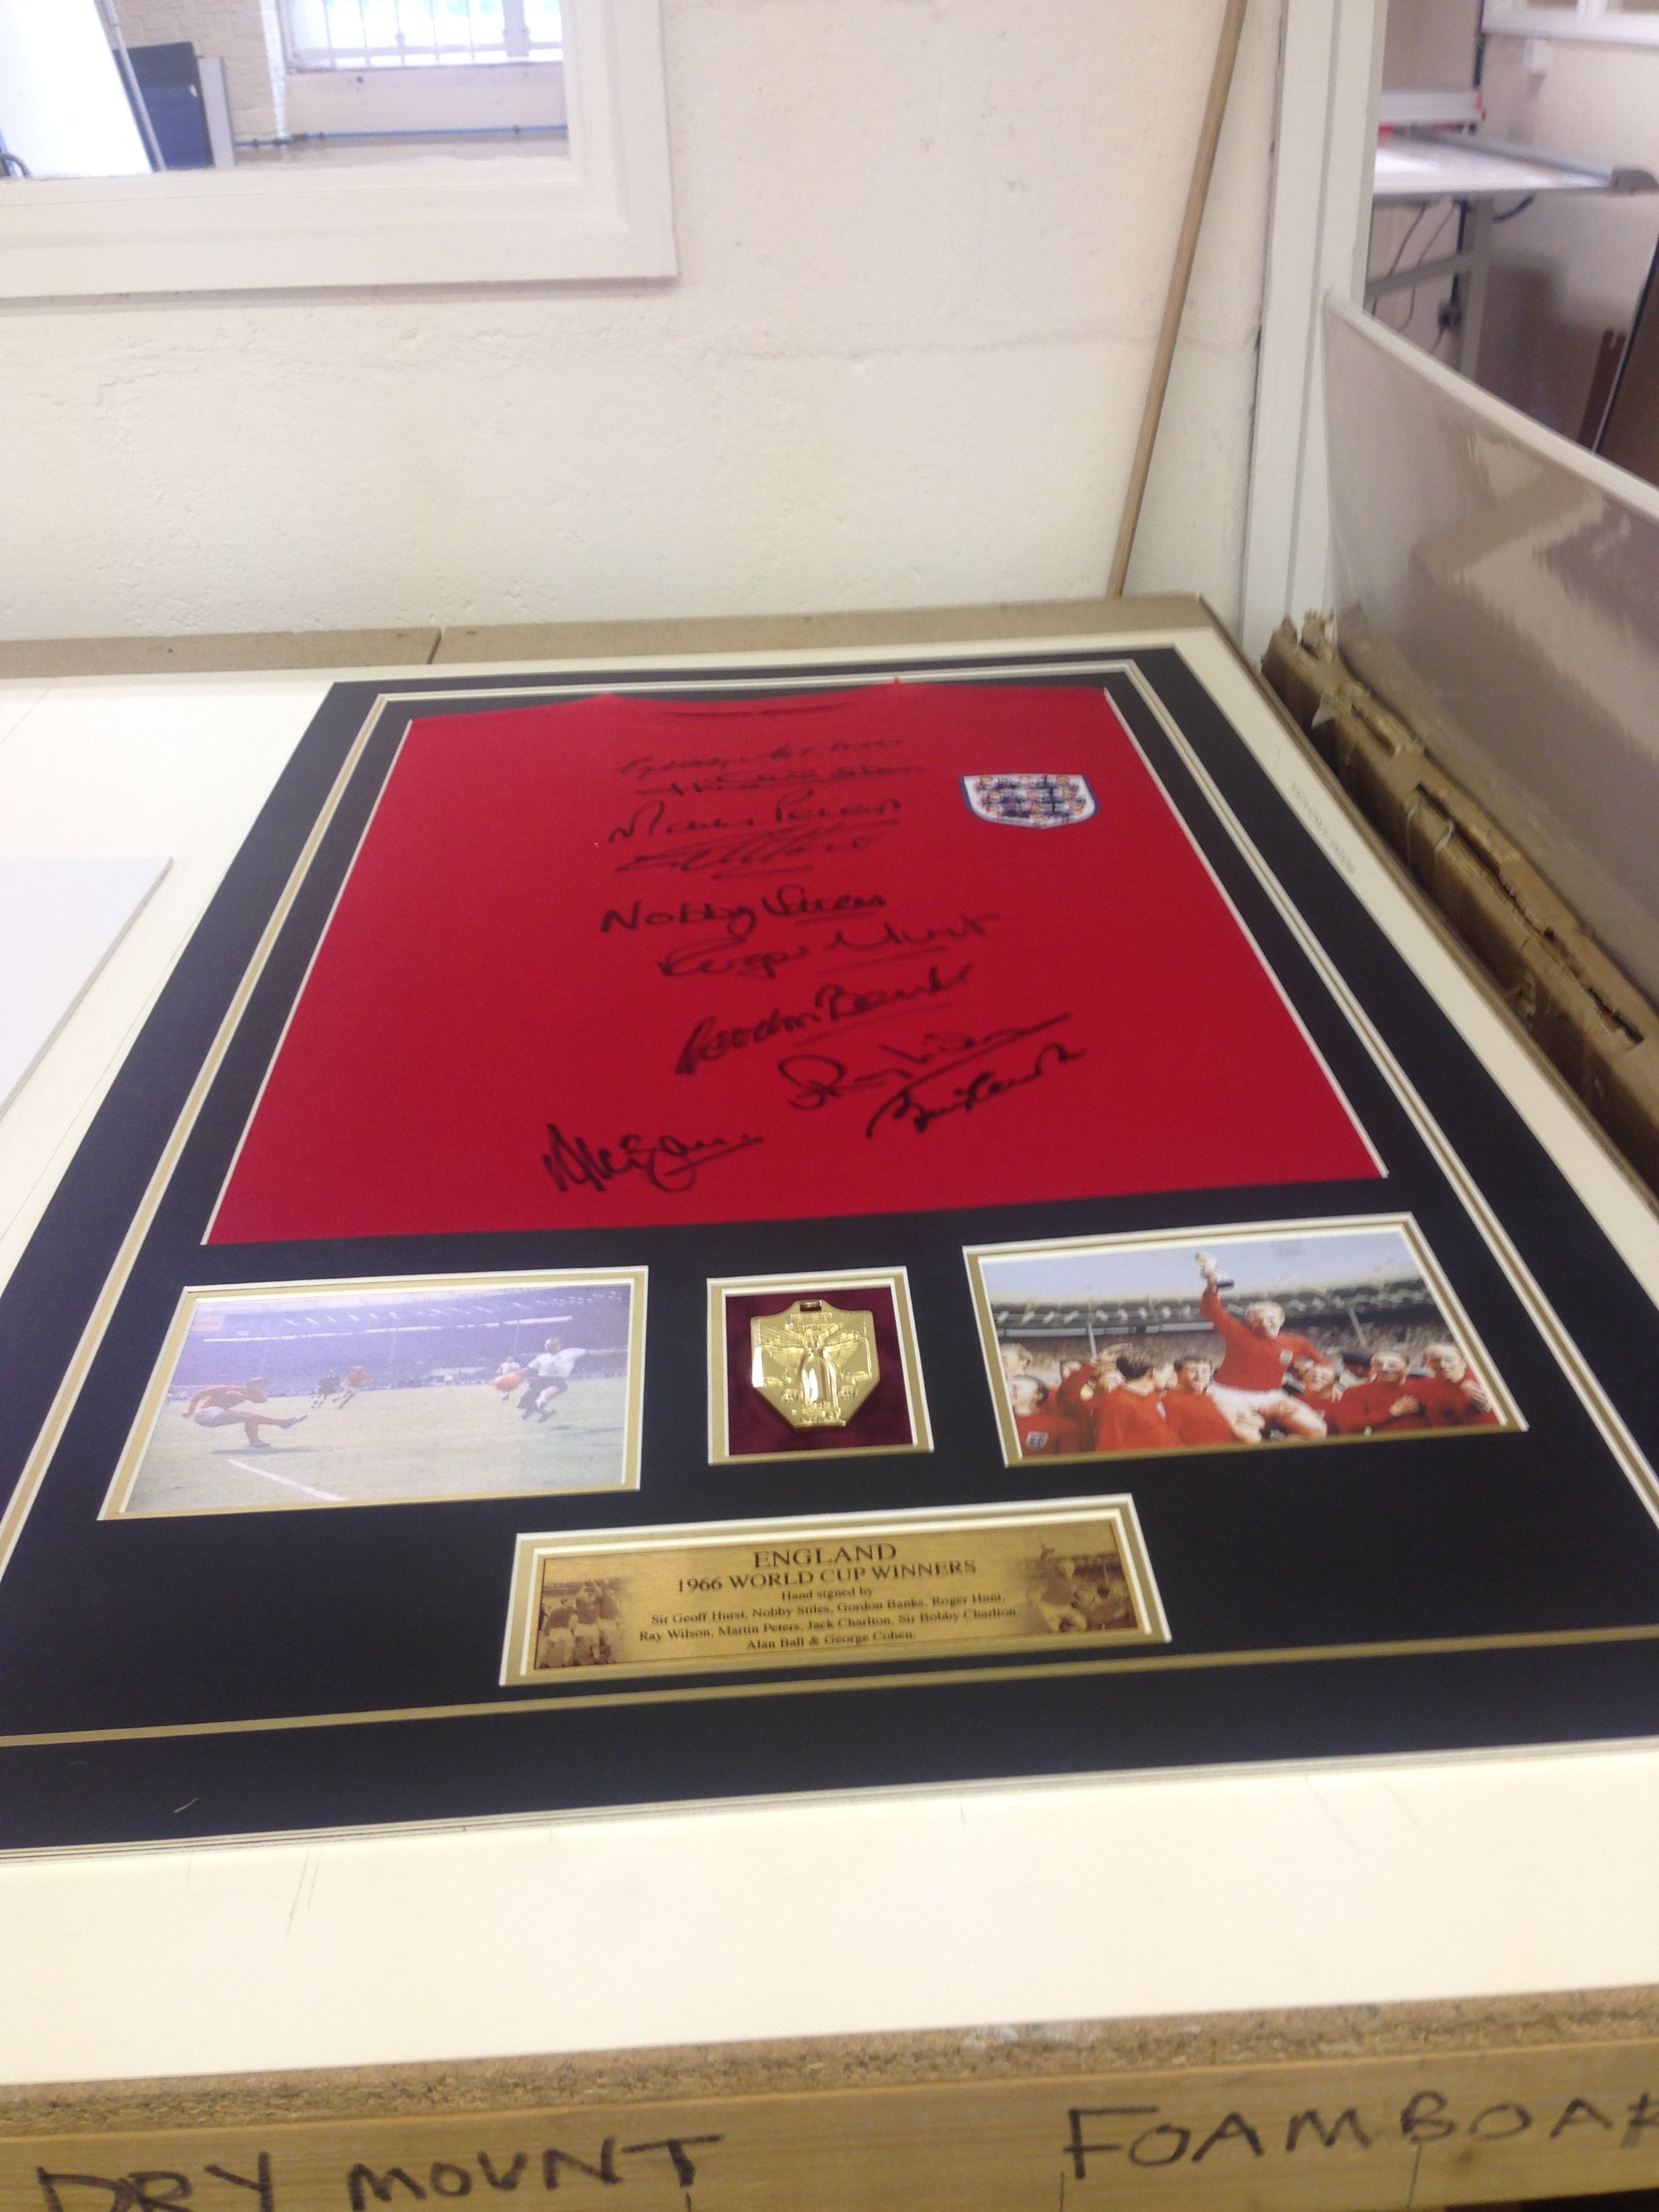 This Lucky Customer Has A 1966 World Cup Winners Signed Top With Medal Jealous Mirrors For Sale Mirror Wall World Cup Winners